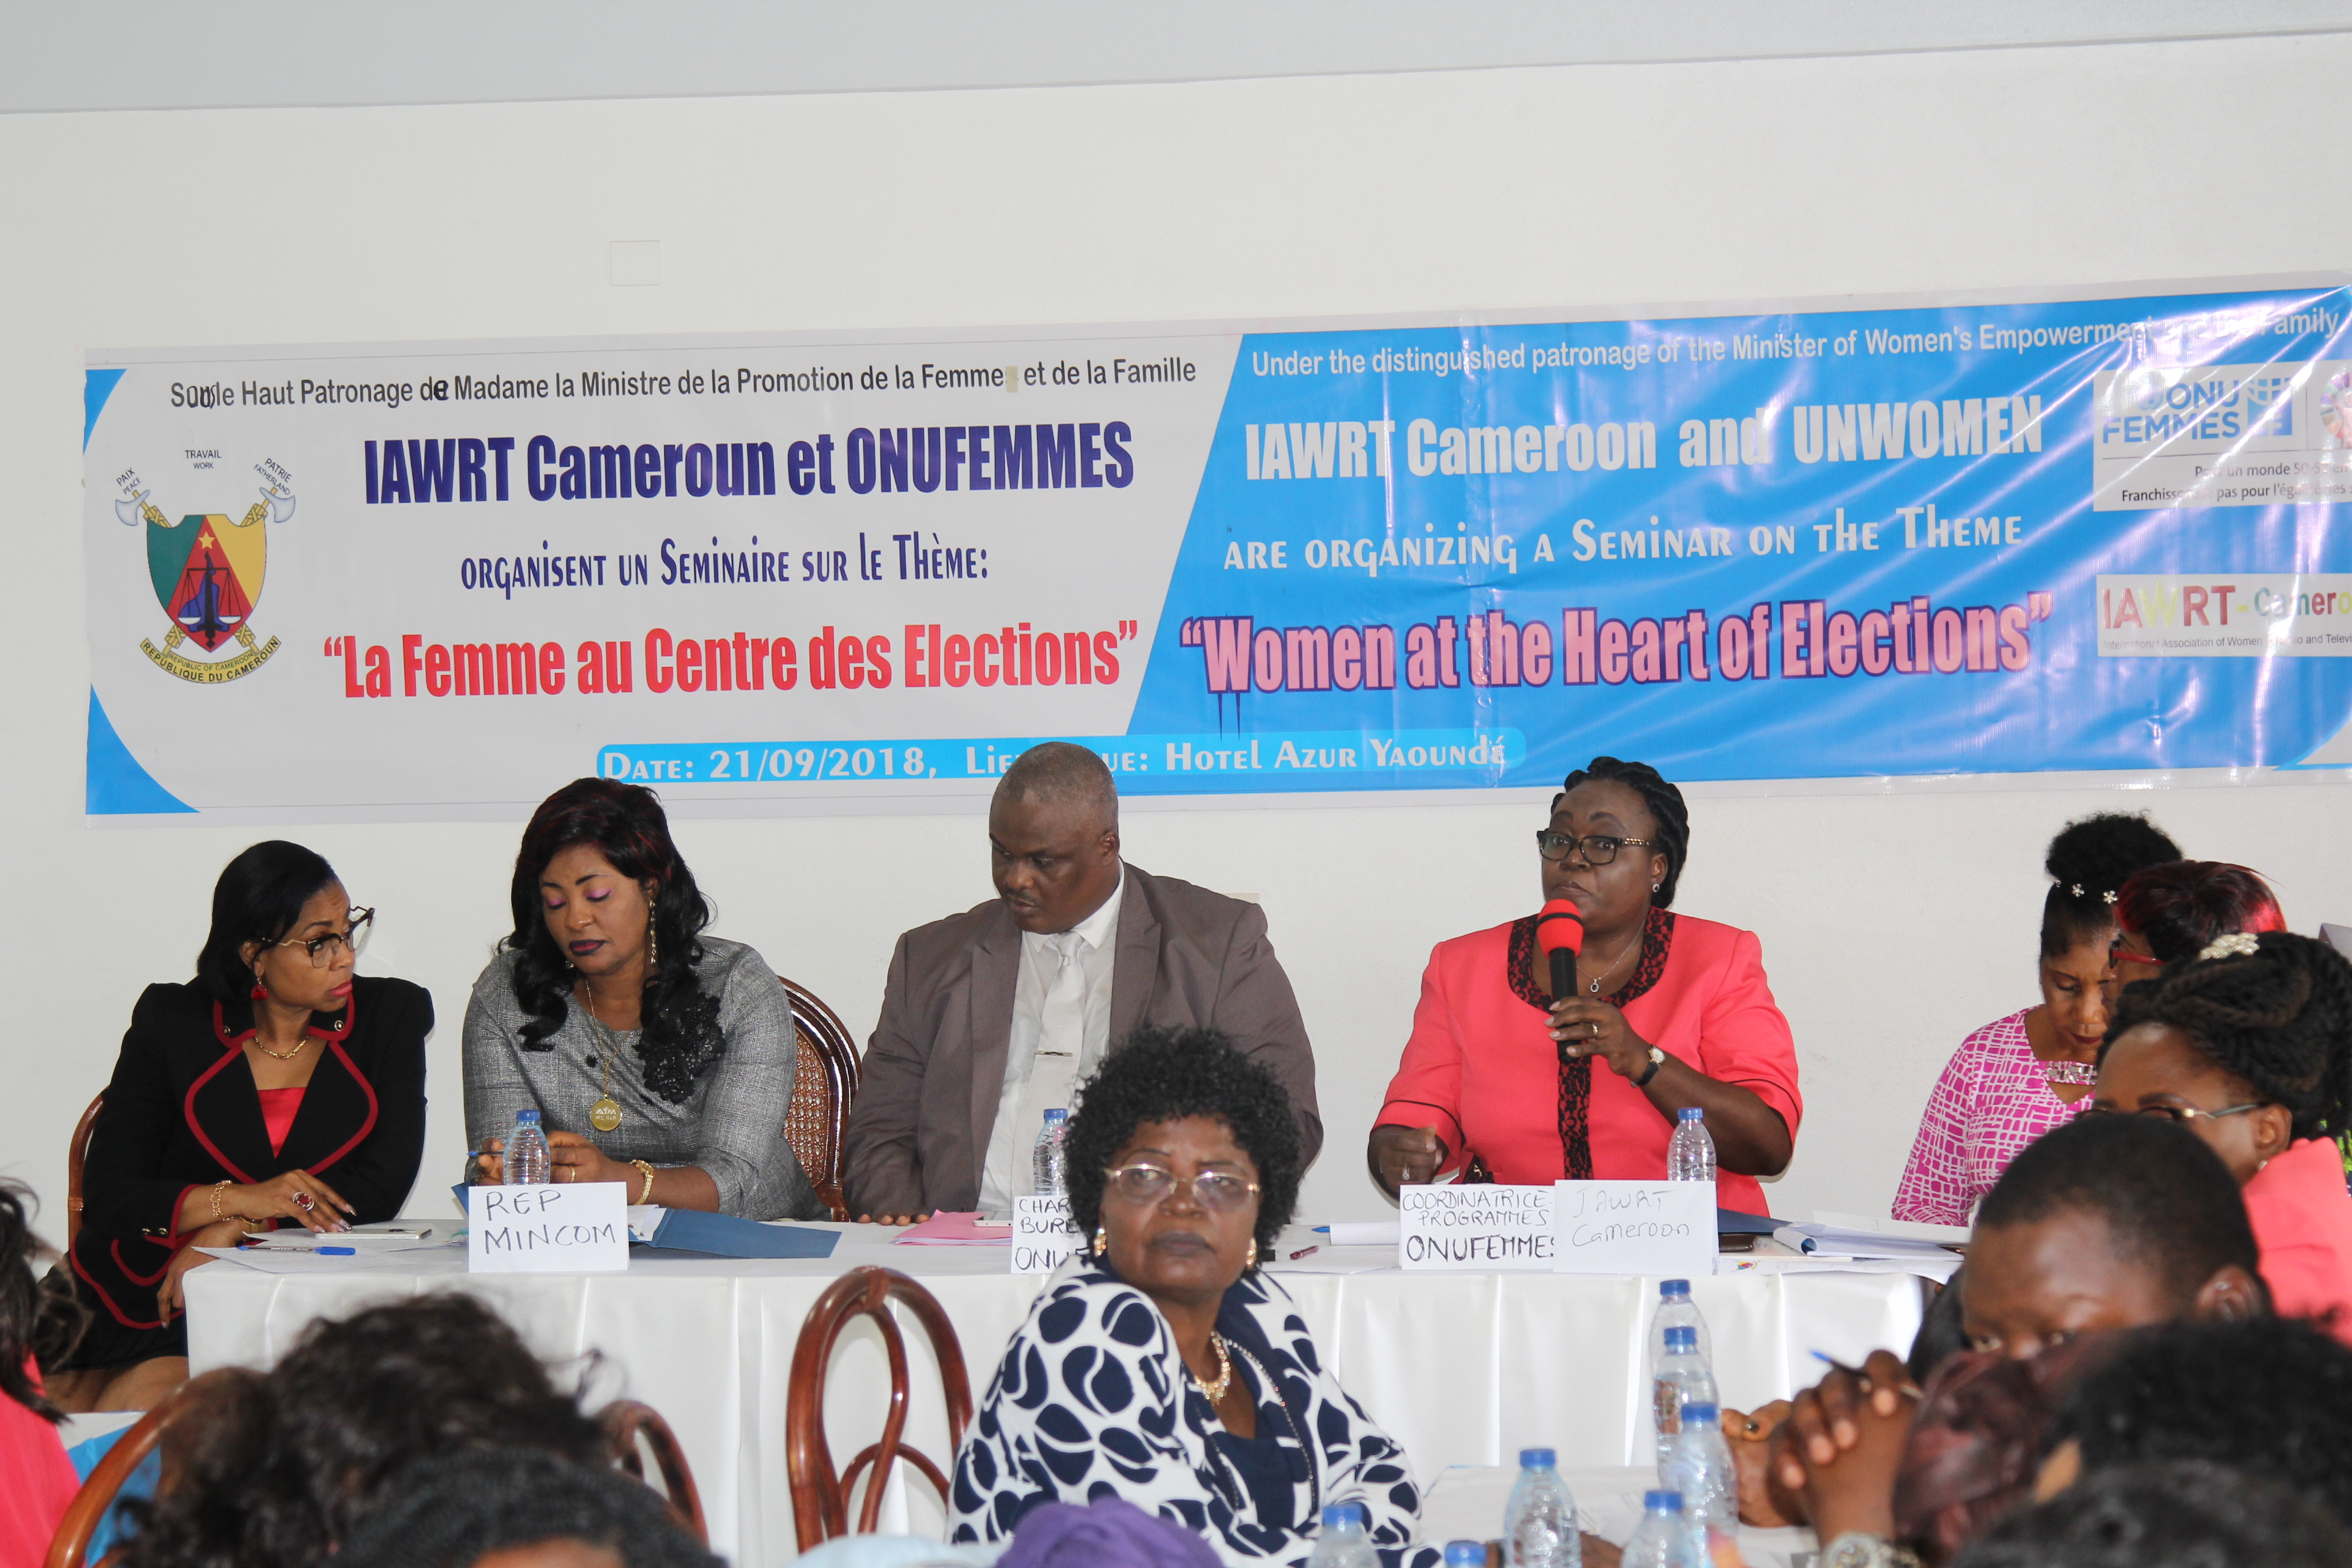 UN Women and IAWRT: Placing women at the heart of Elections